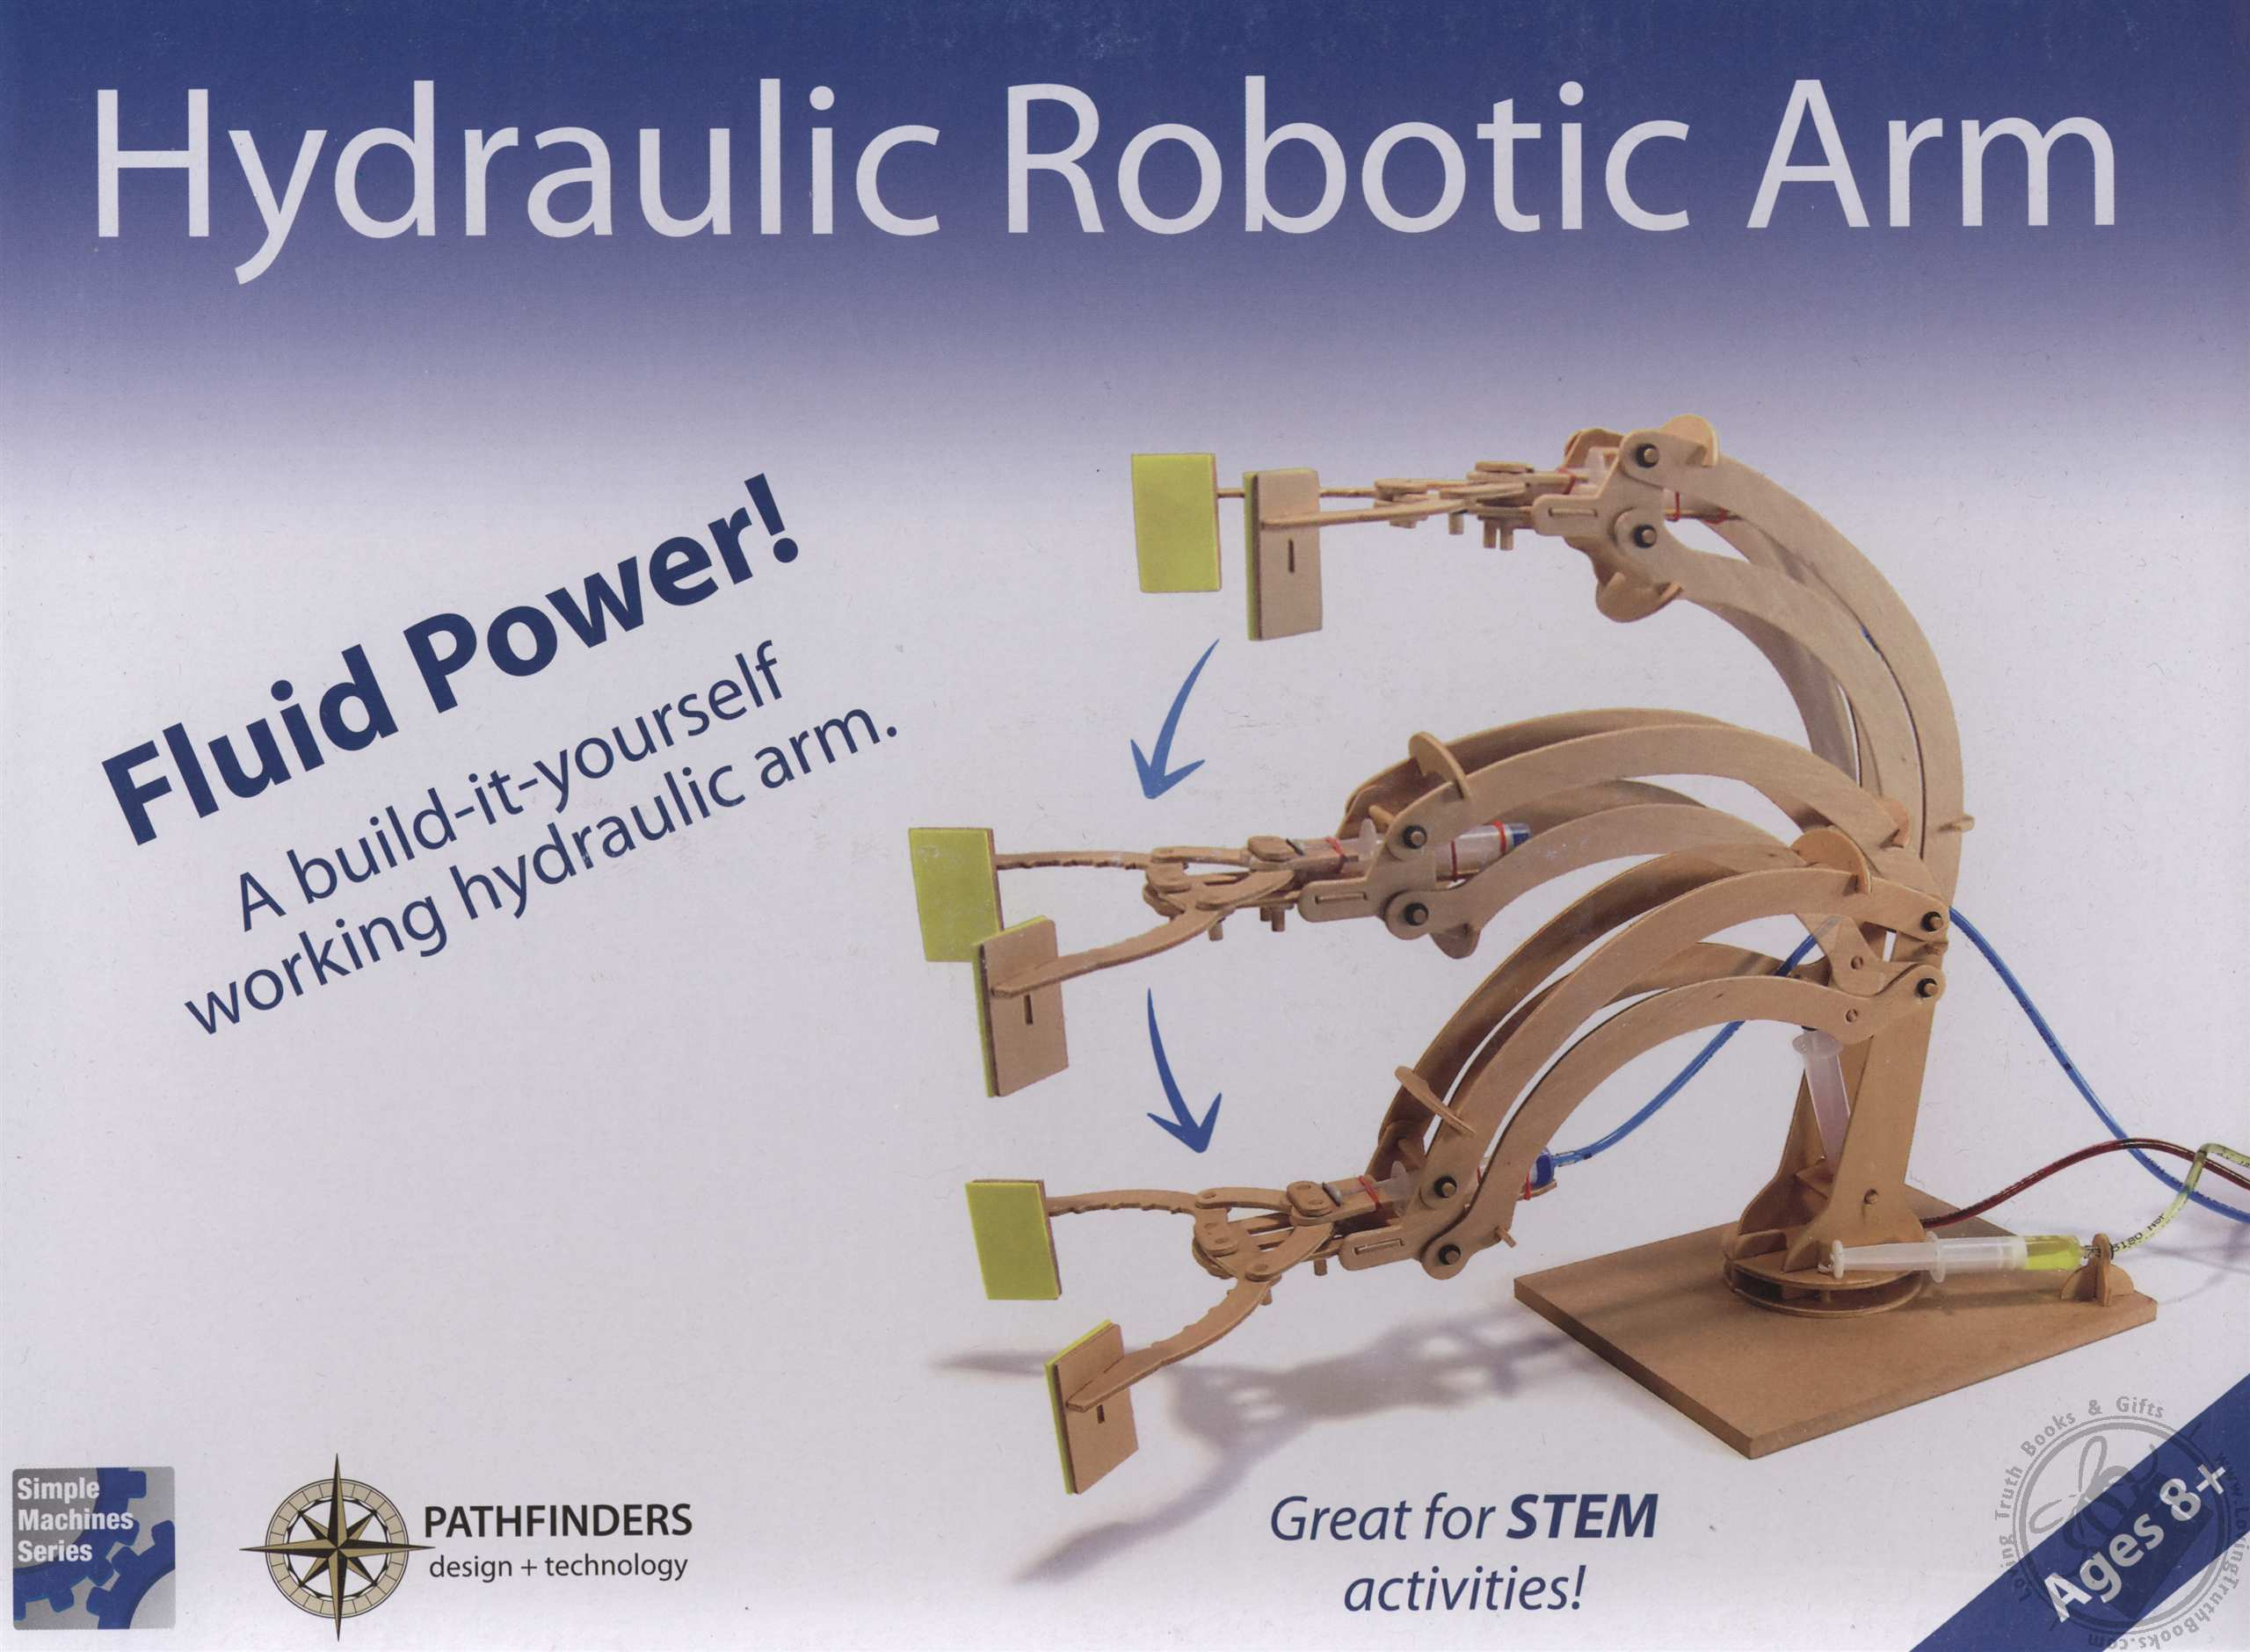 Hydraulic Arm T Bot : Simple machines series wooden hydraulic robotic arm for